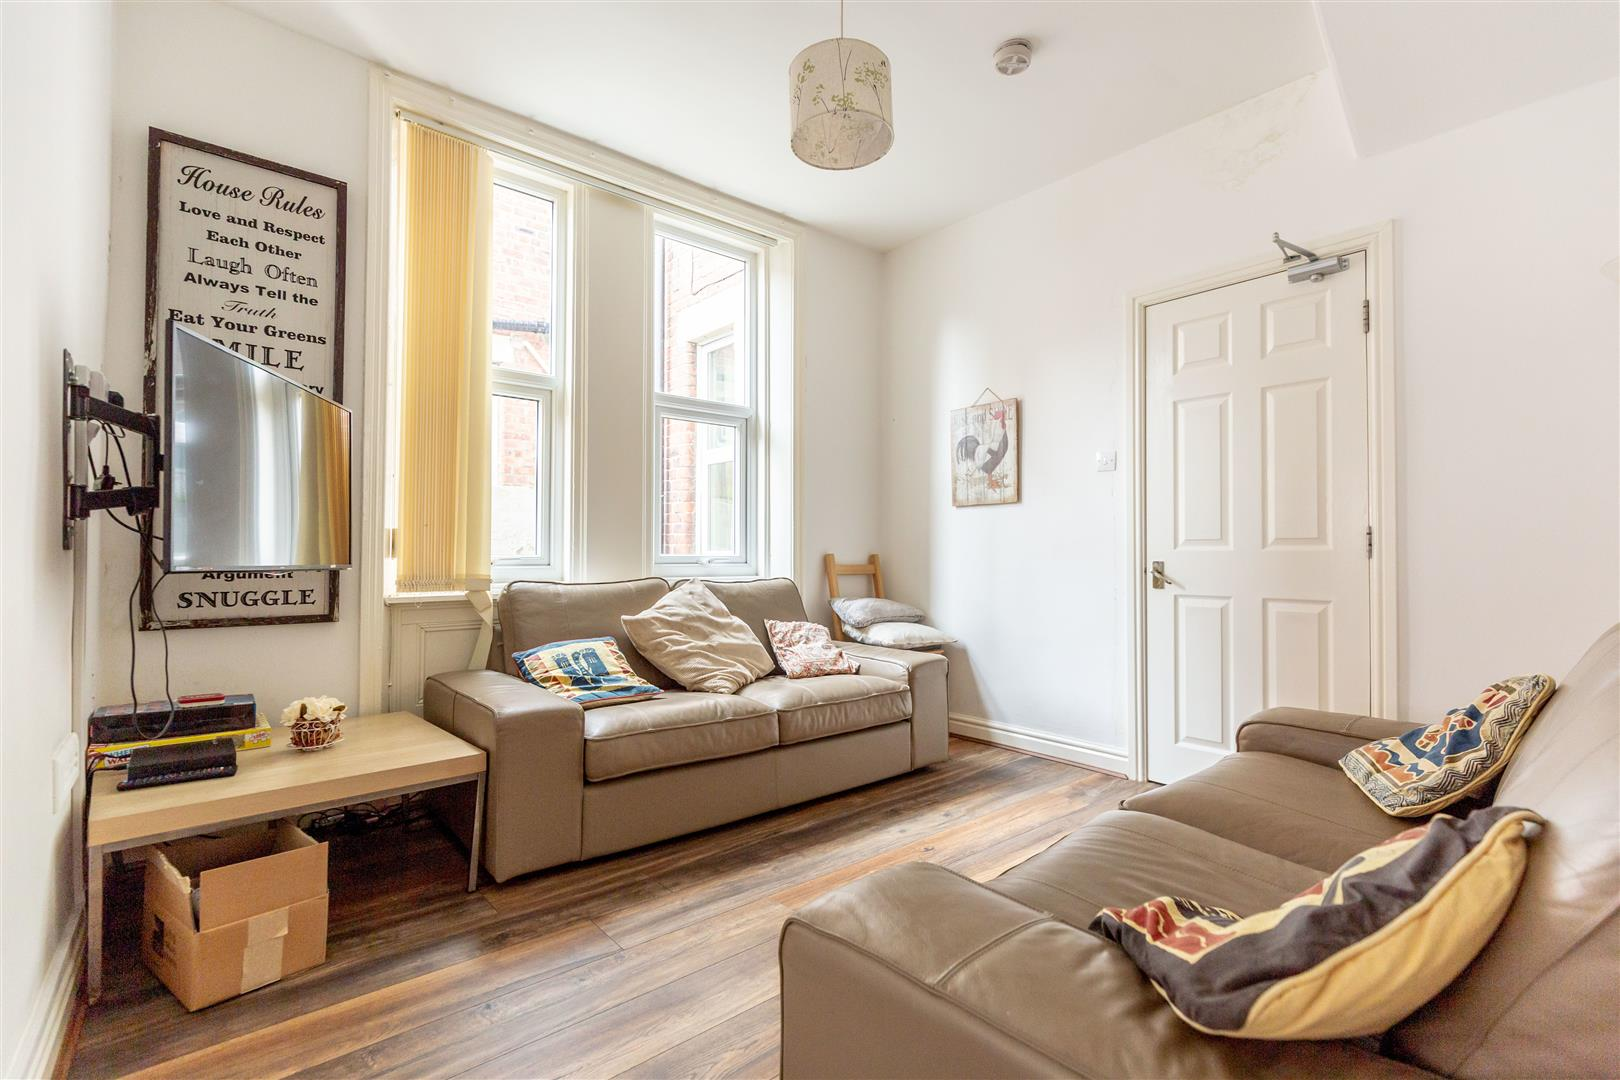 6 bed terraced house to rent in Newcastle Upon Tyne, NE6 5LR  - Property Image 6